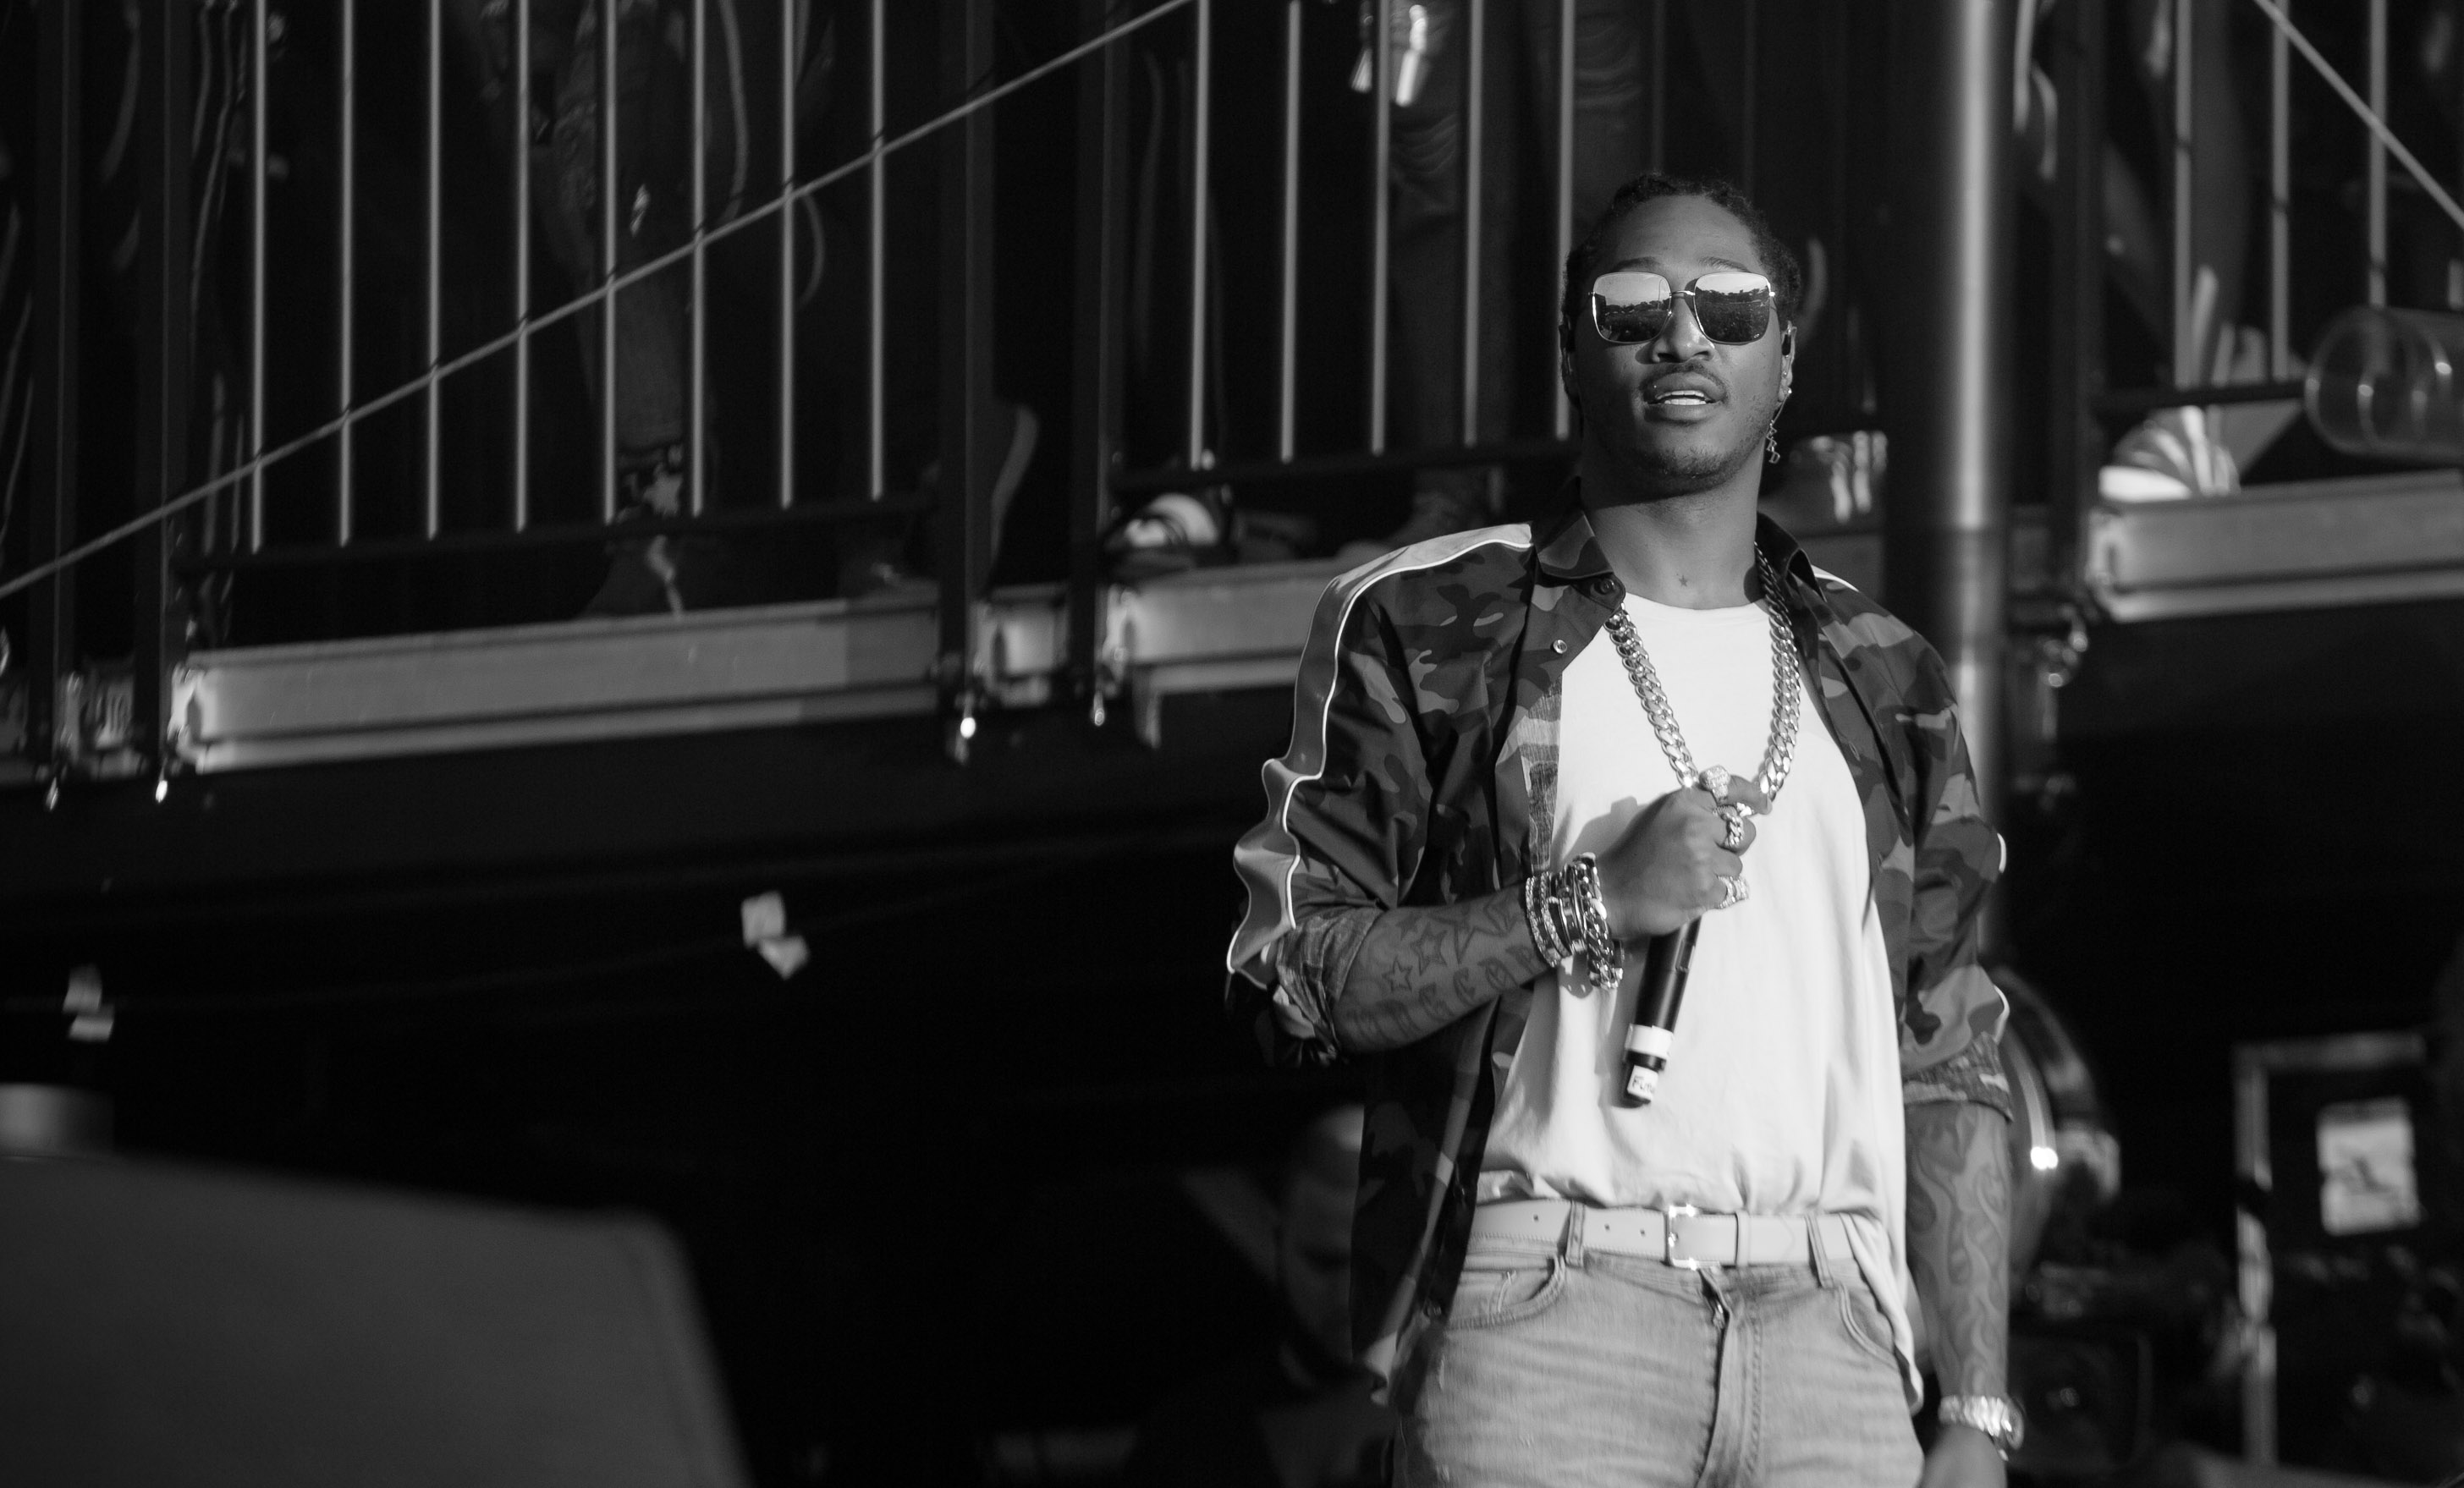 Future Reveals He Is Still Coping With The Death of Juice WRLD